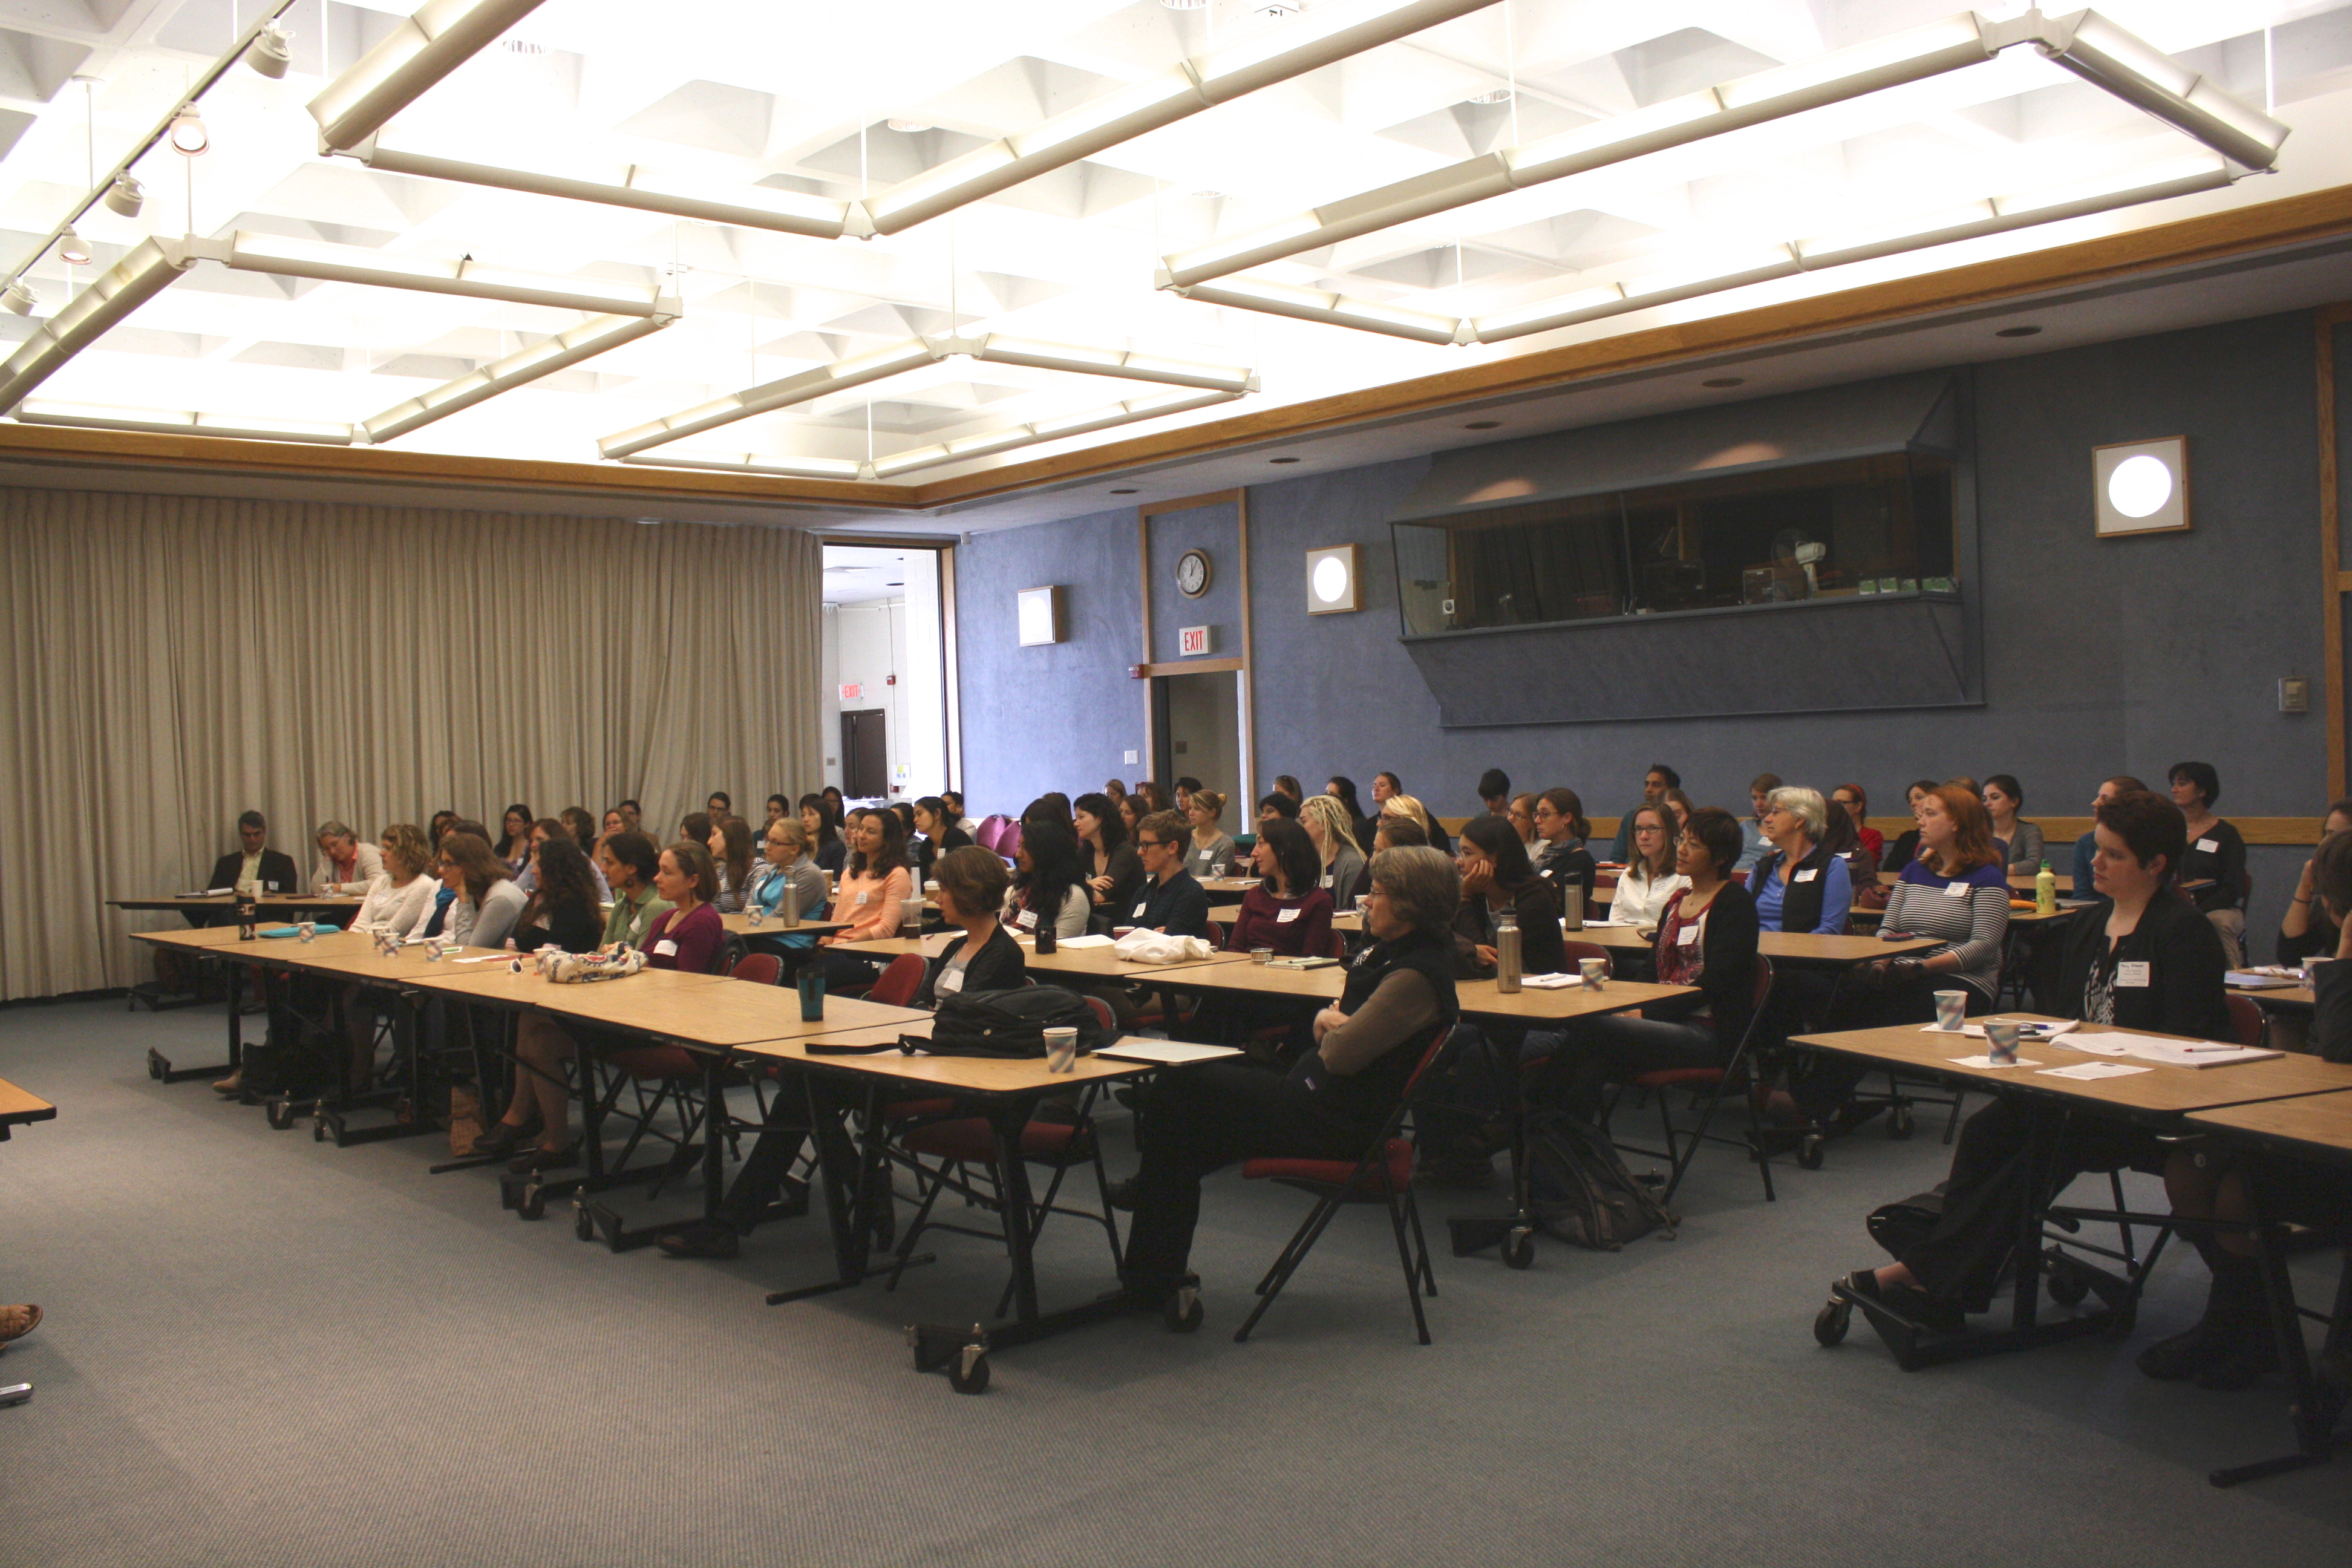 PHOTO: A full house at the 2014 workshop